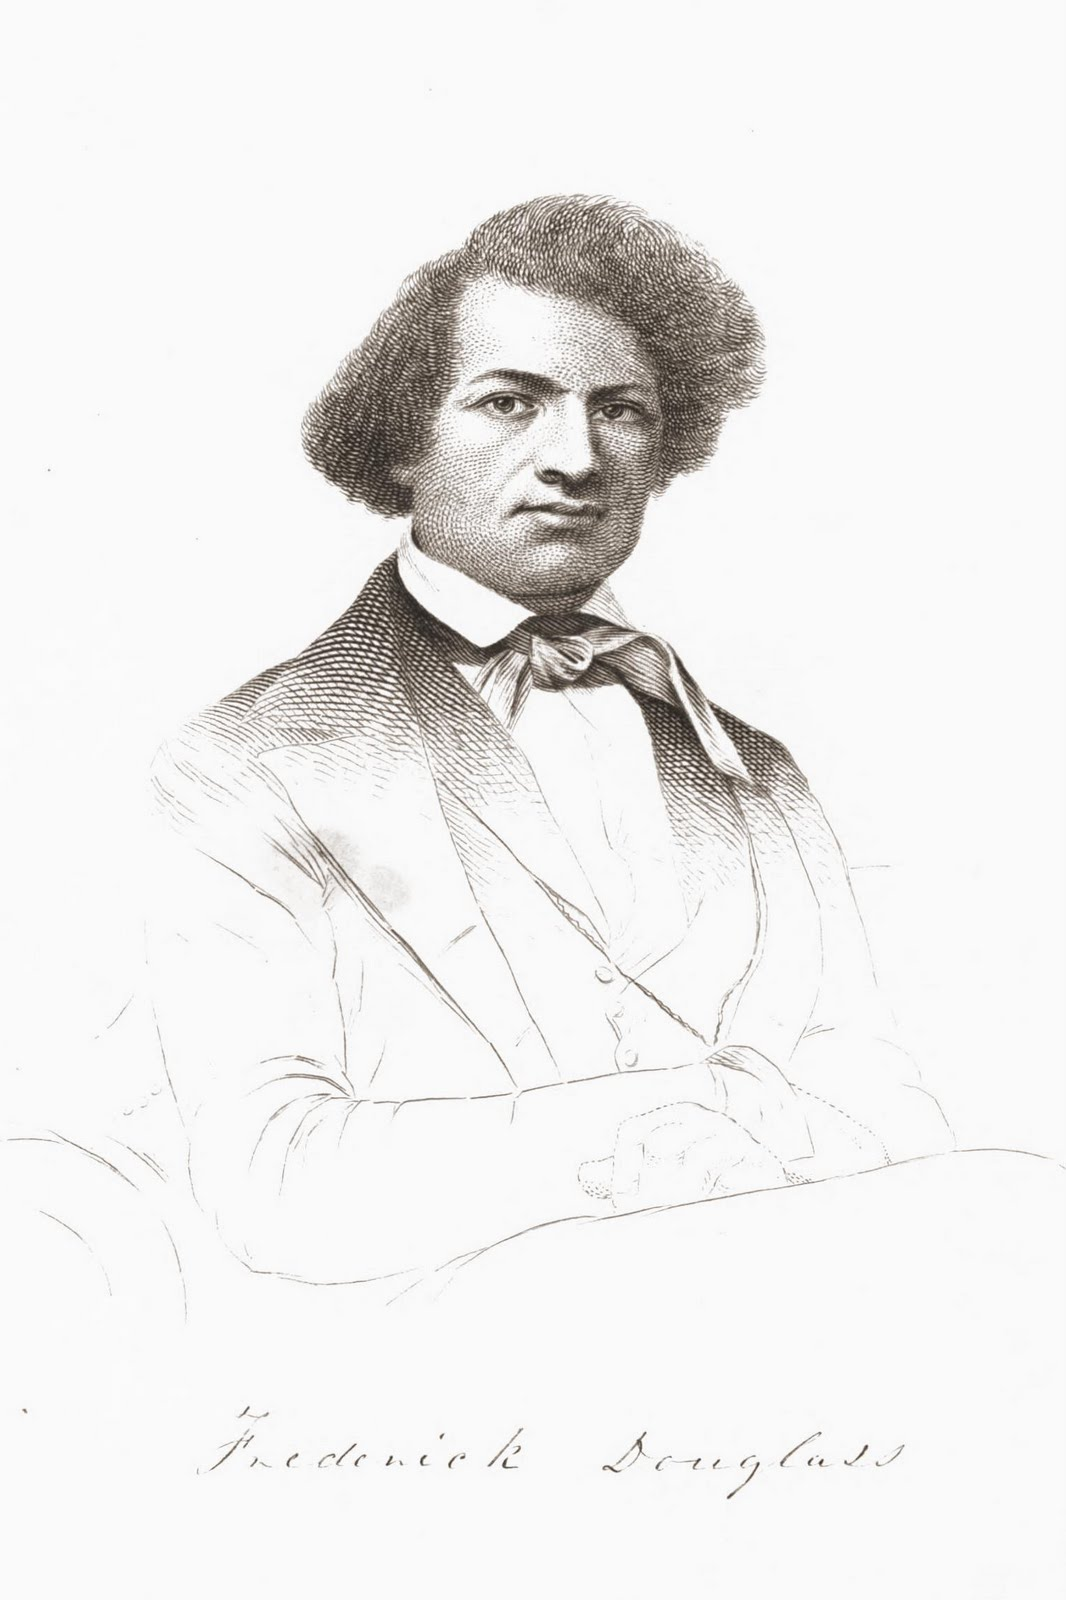 What source does Douglass rely on to learn how to read and write?